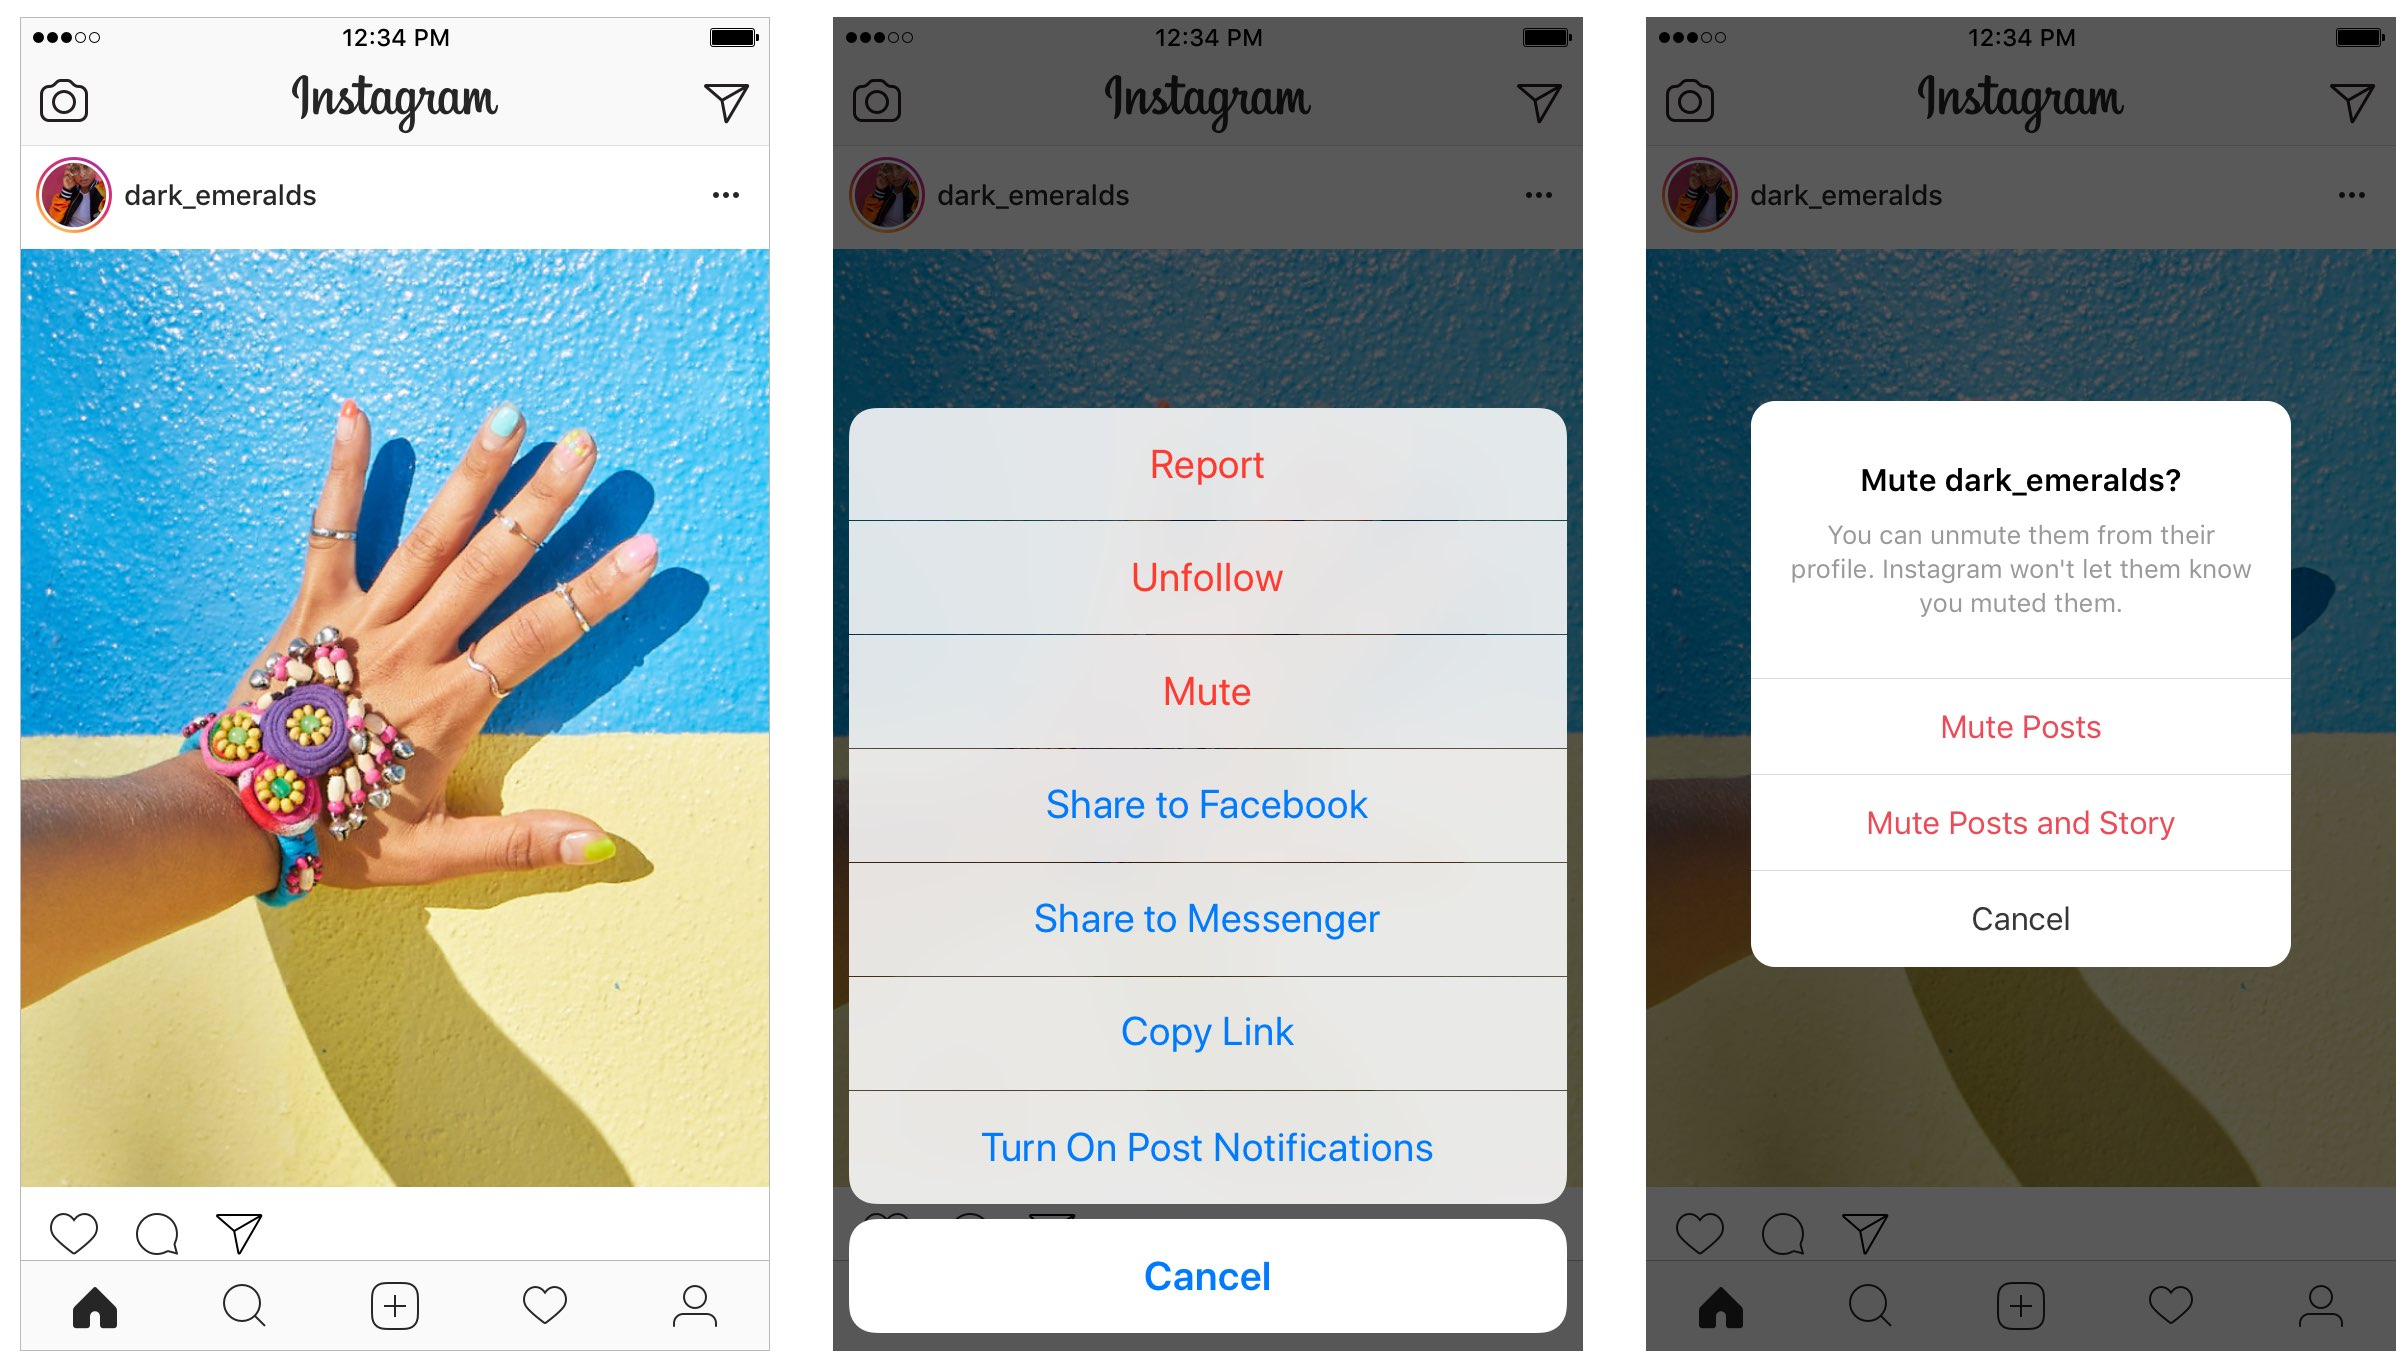 Feed Instagram: How To Hide Instagram Posts, Stories Or Both—without